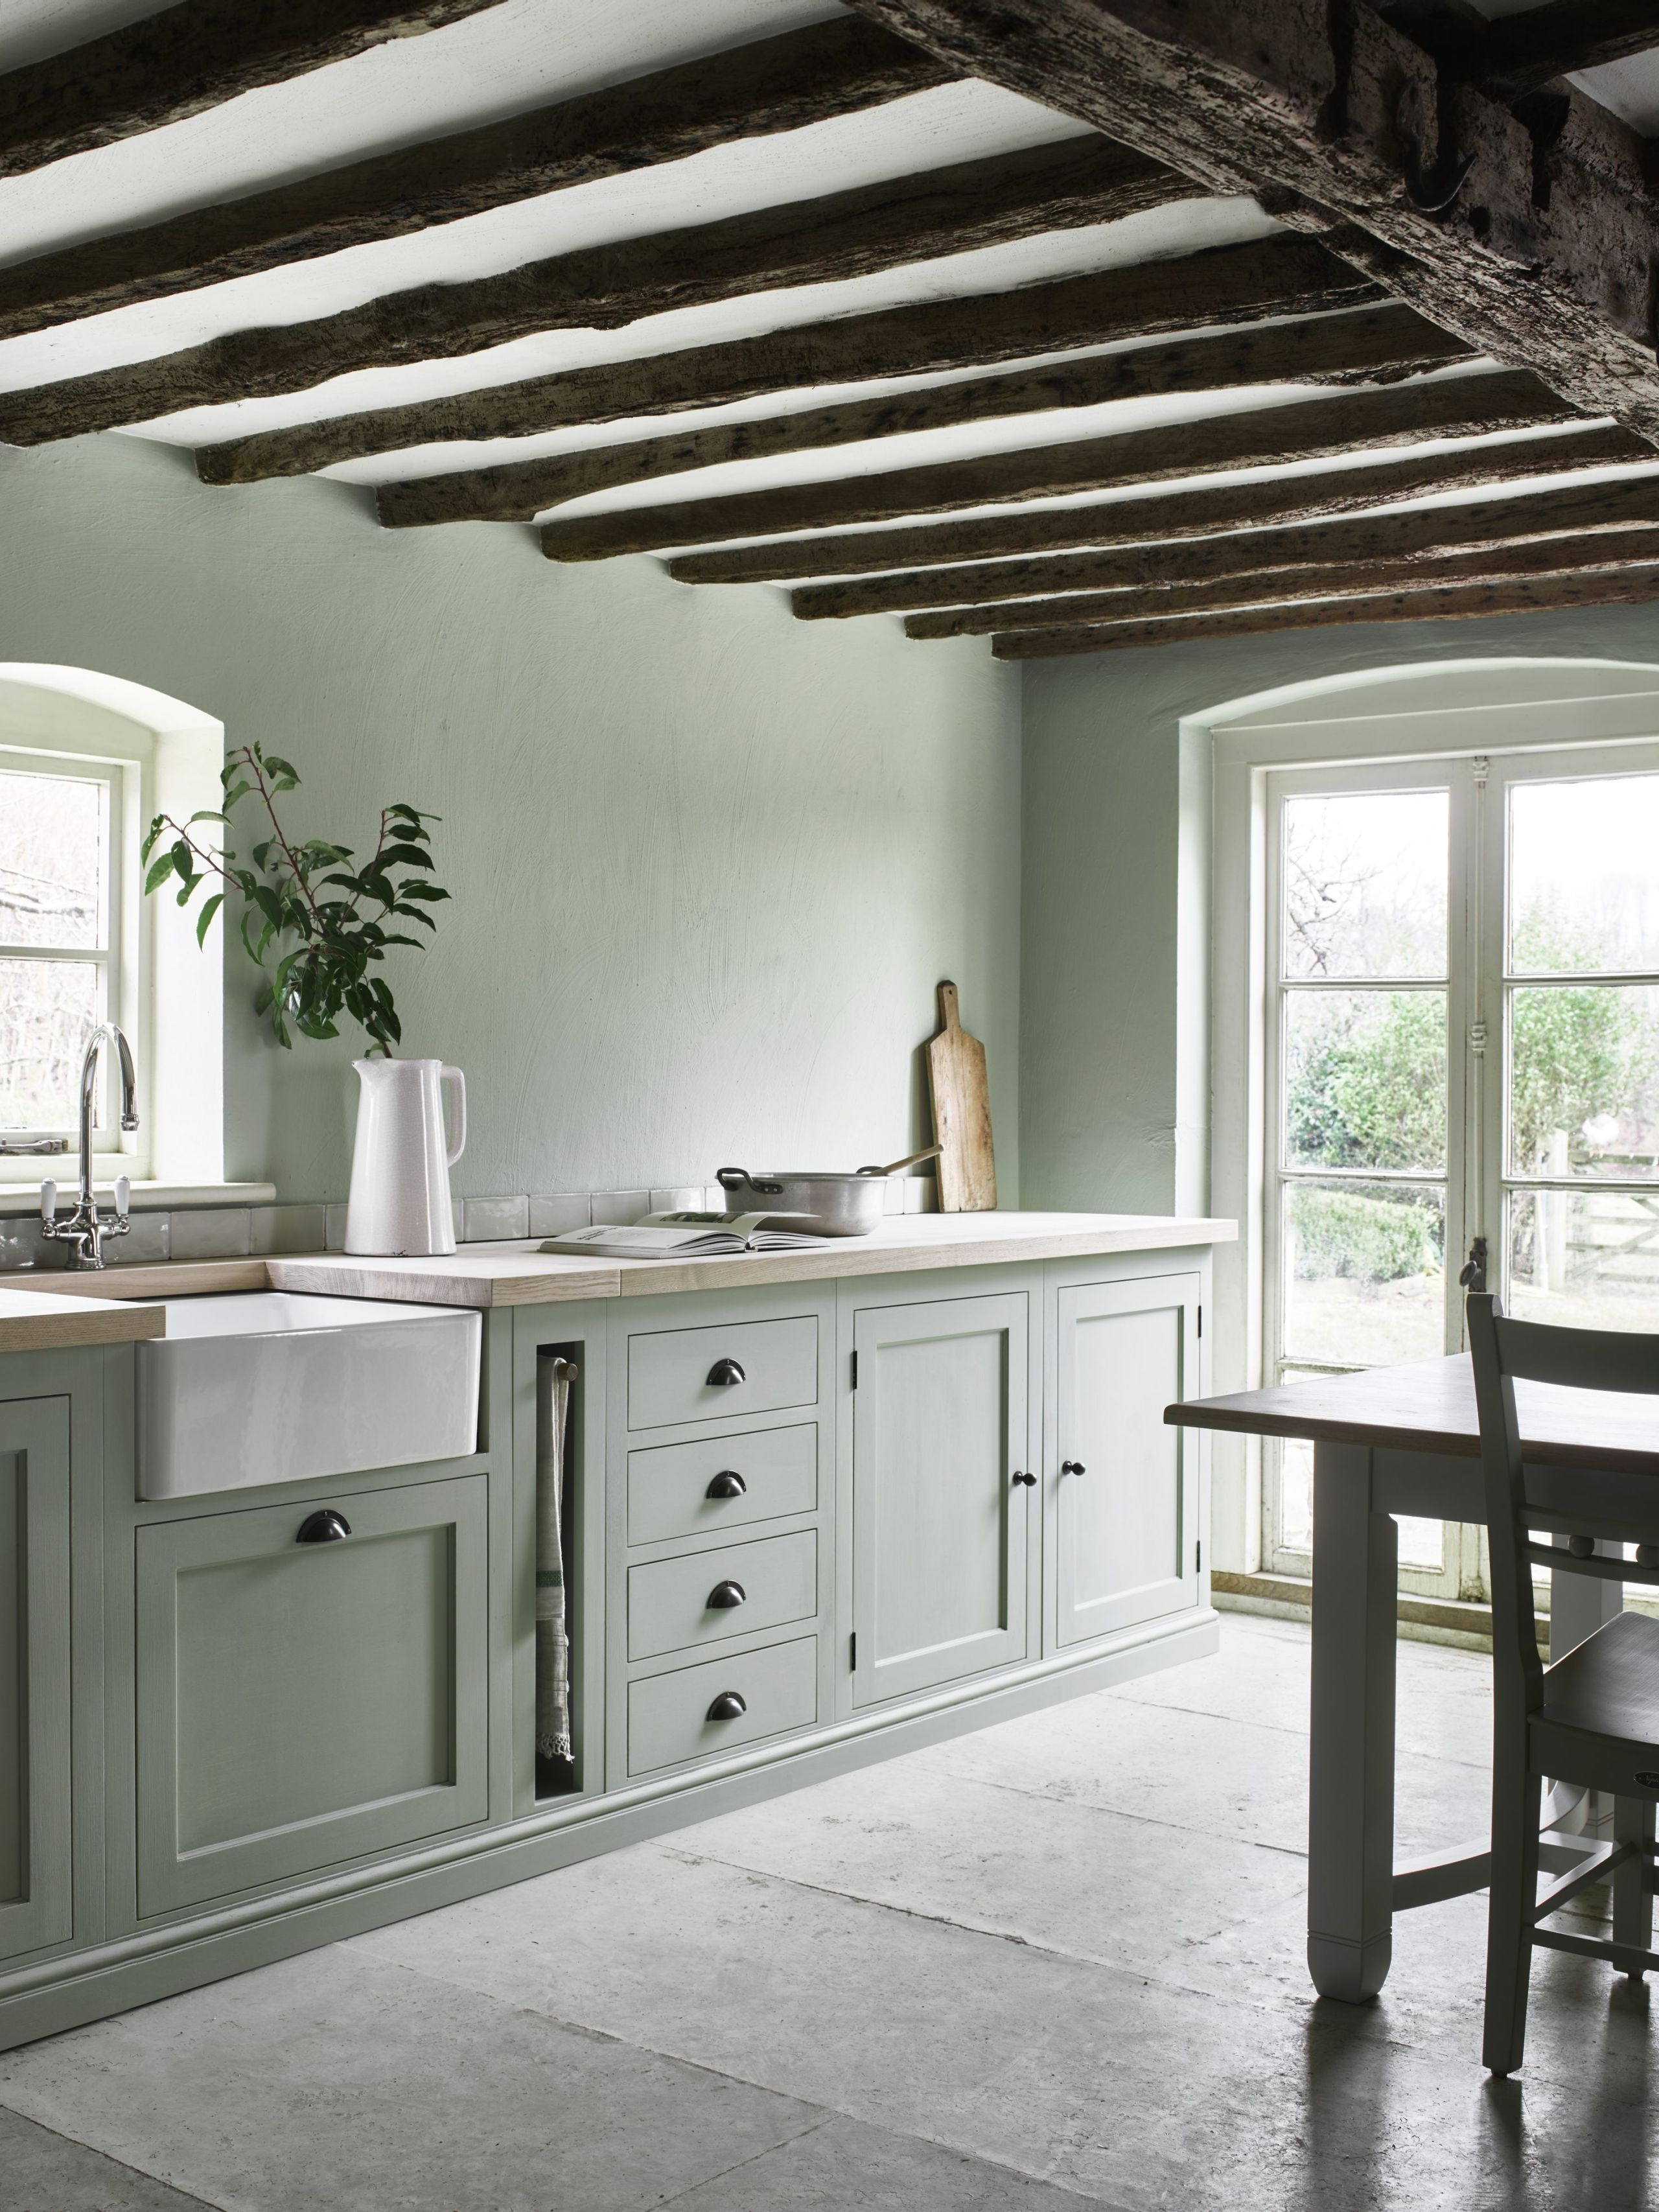 country kitchens neptune henley kitchen hand-painted in sage from £14,000 GLSGSSW